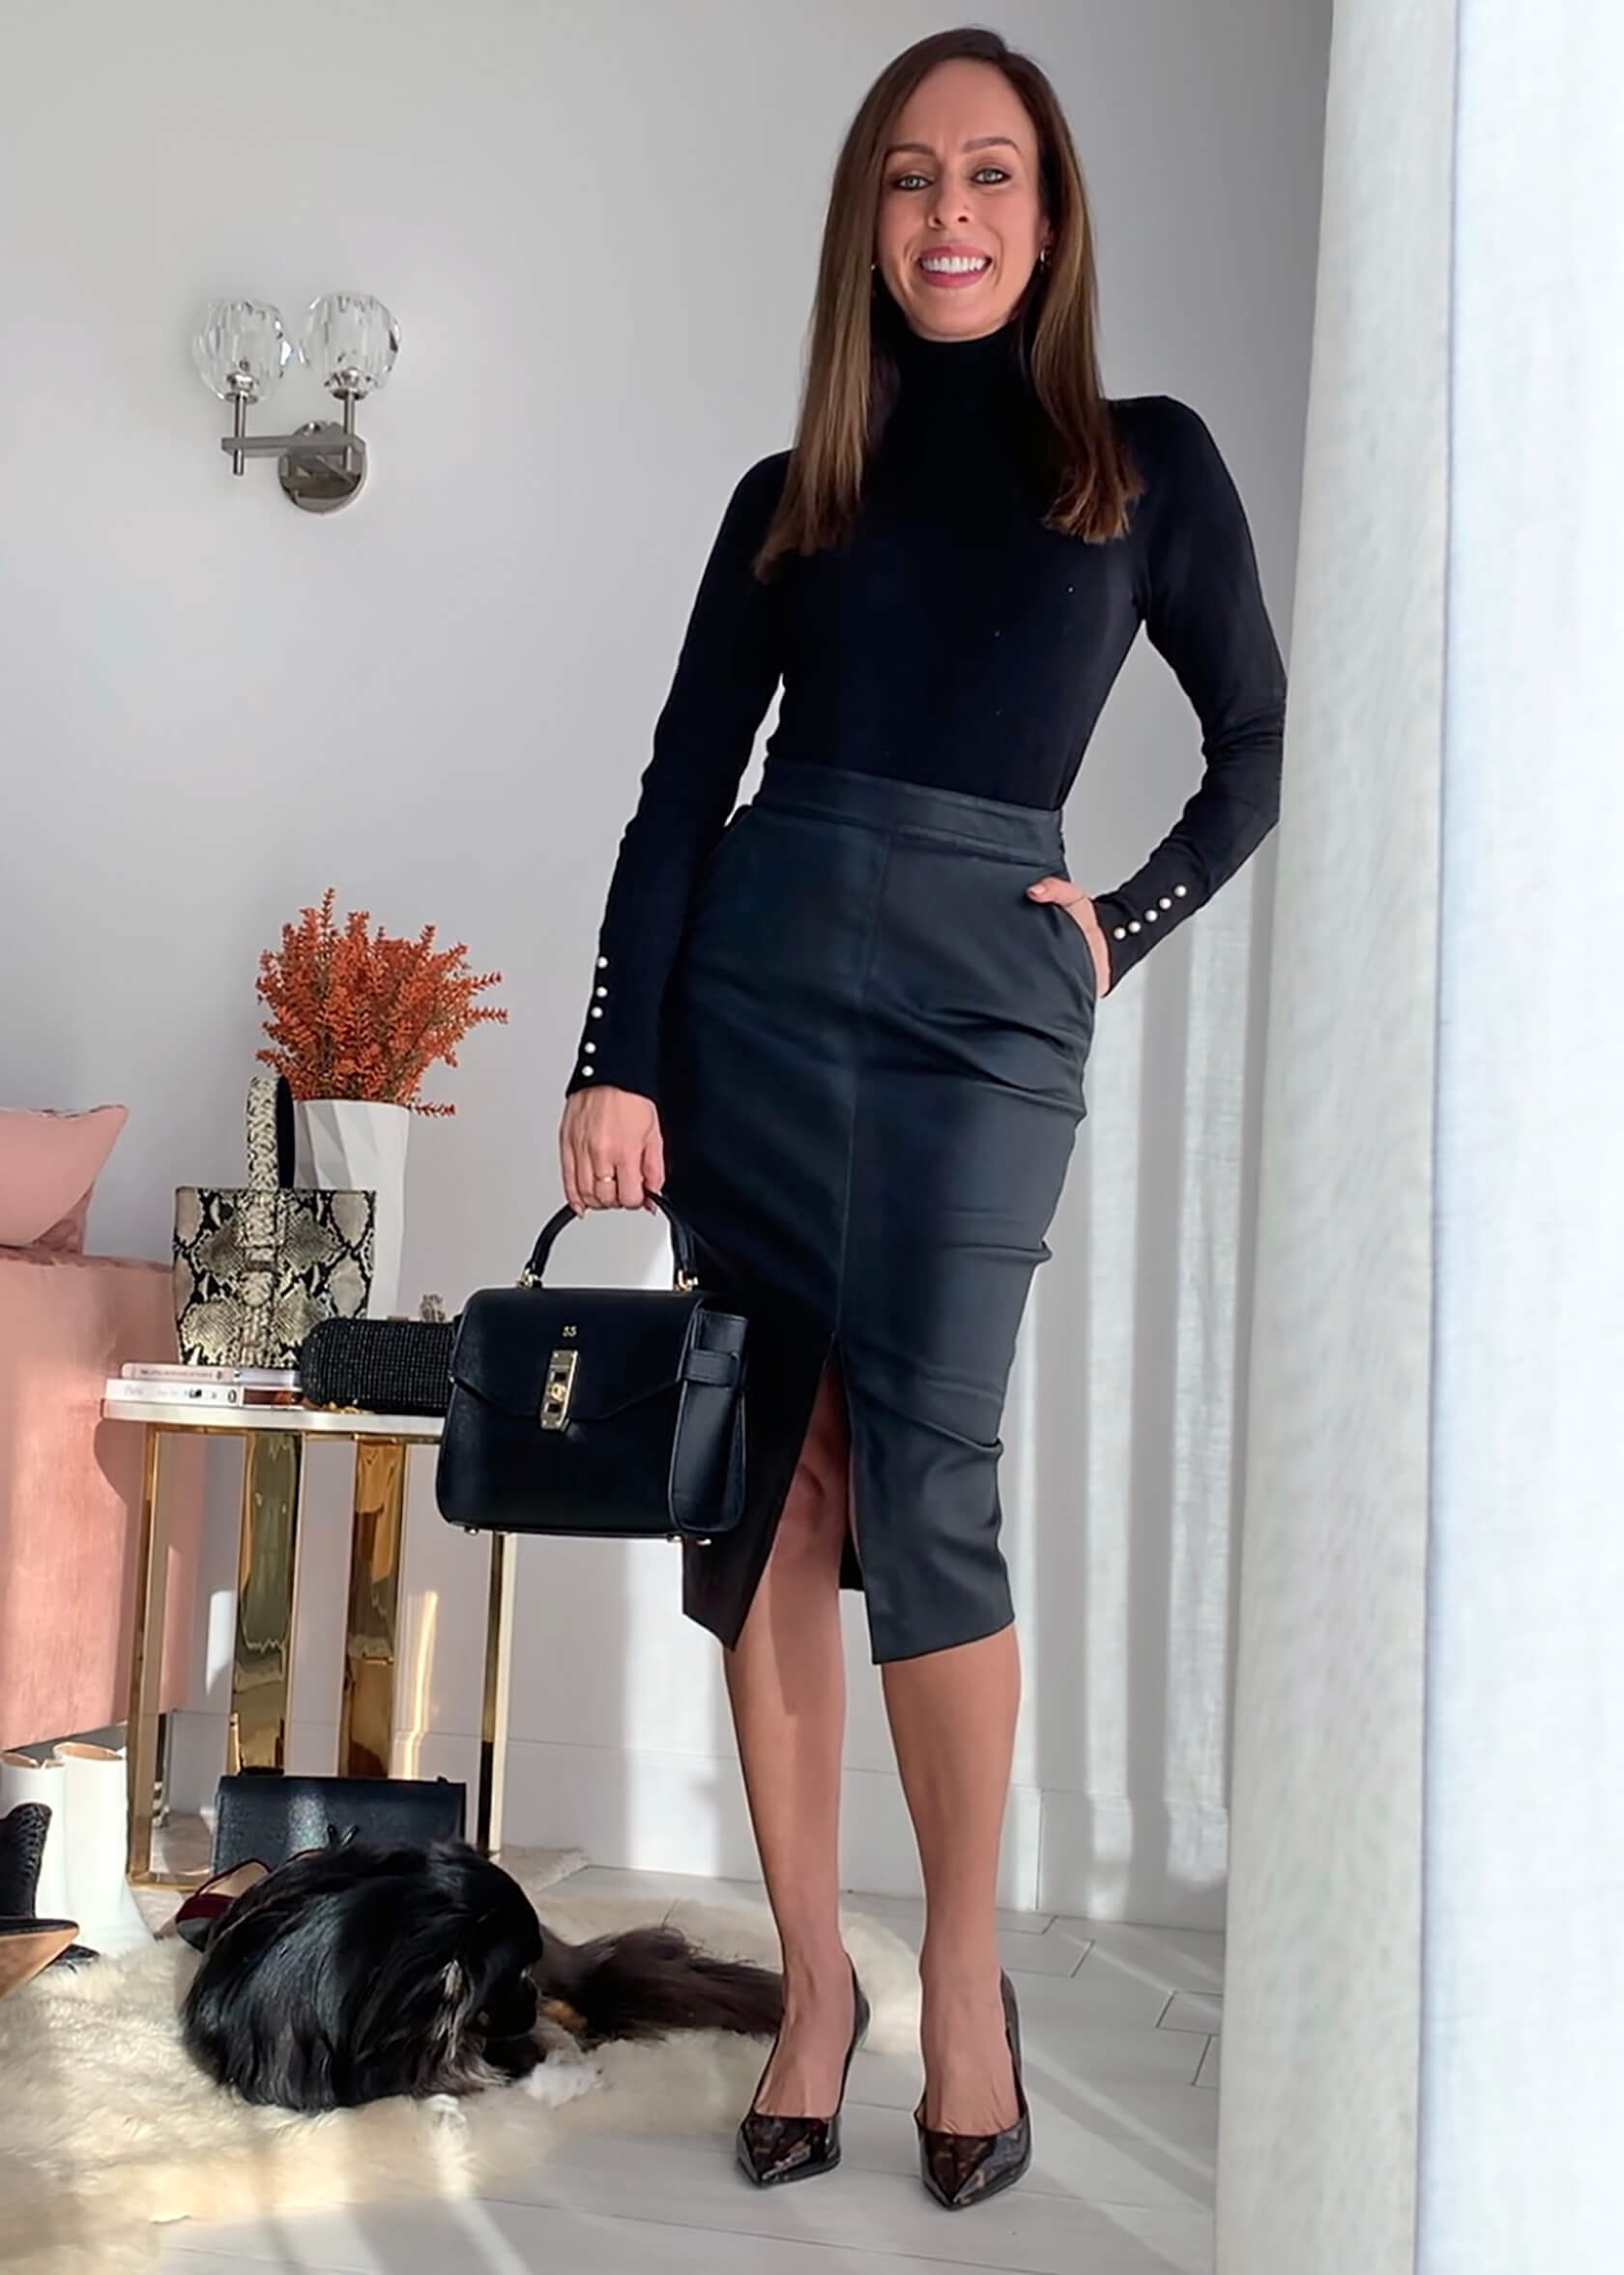 Turtleneck top & pumps with leather skirt with slit